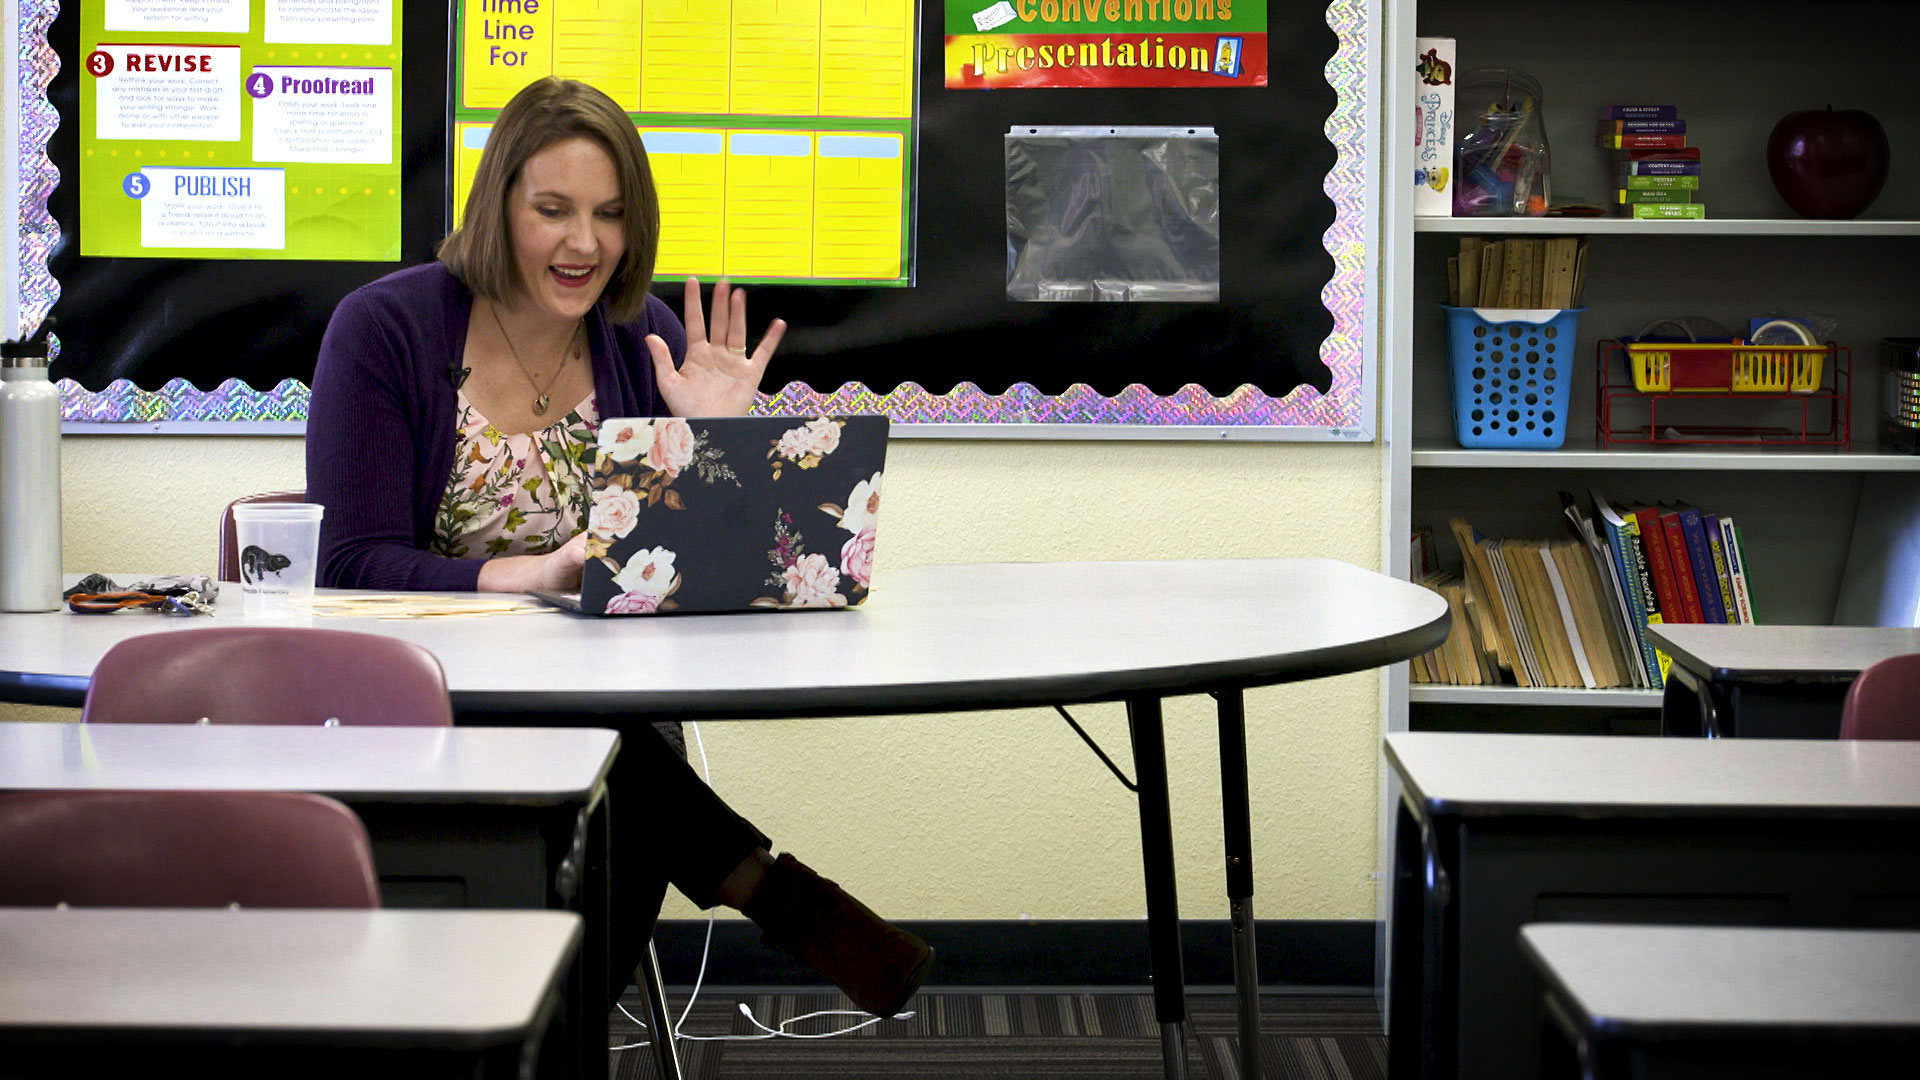 Shannon Jelle waves to her 5th grade students during a video chat on their first day of class at Mesquite Elementary School on August 10, 2020.